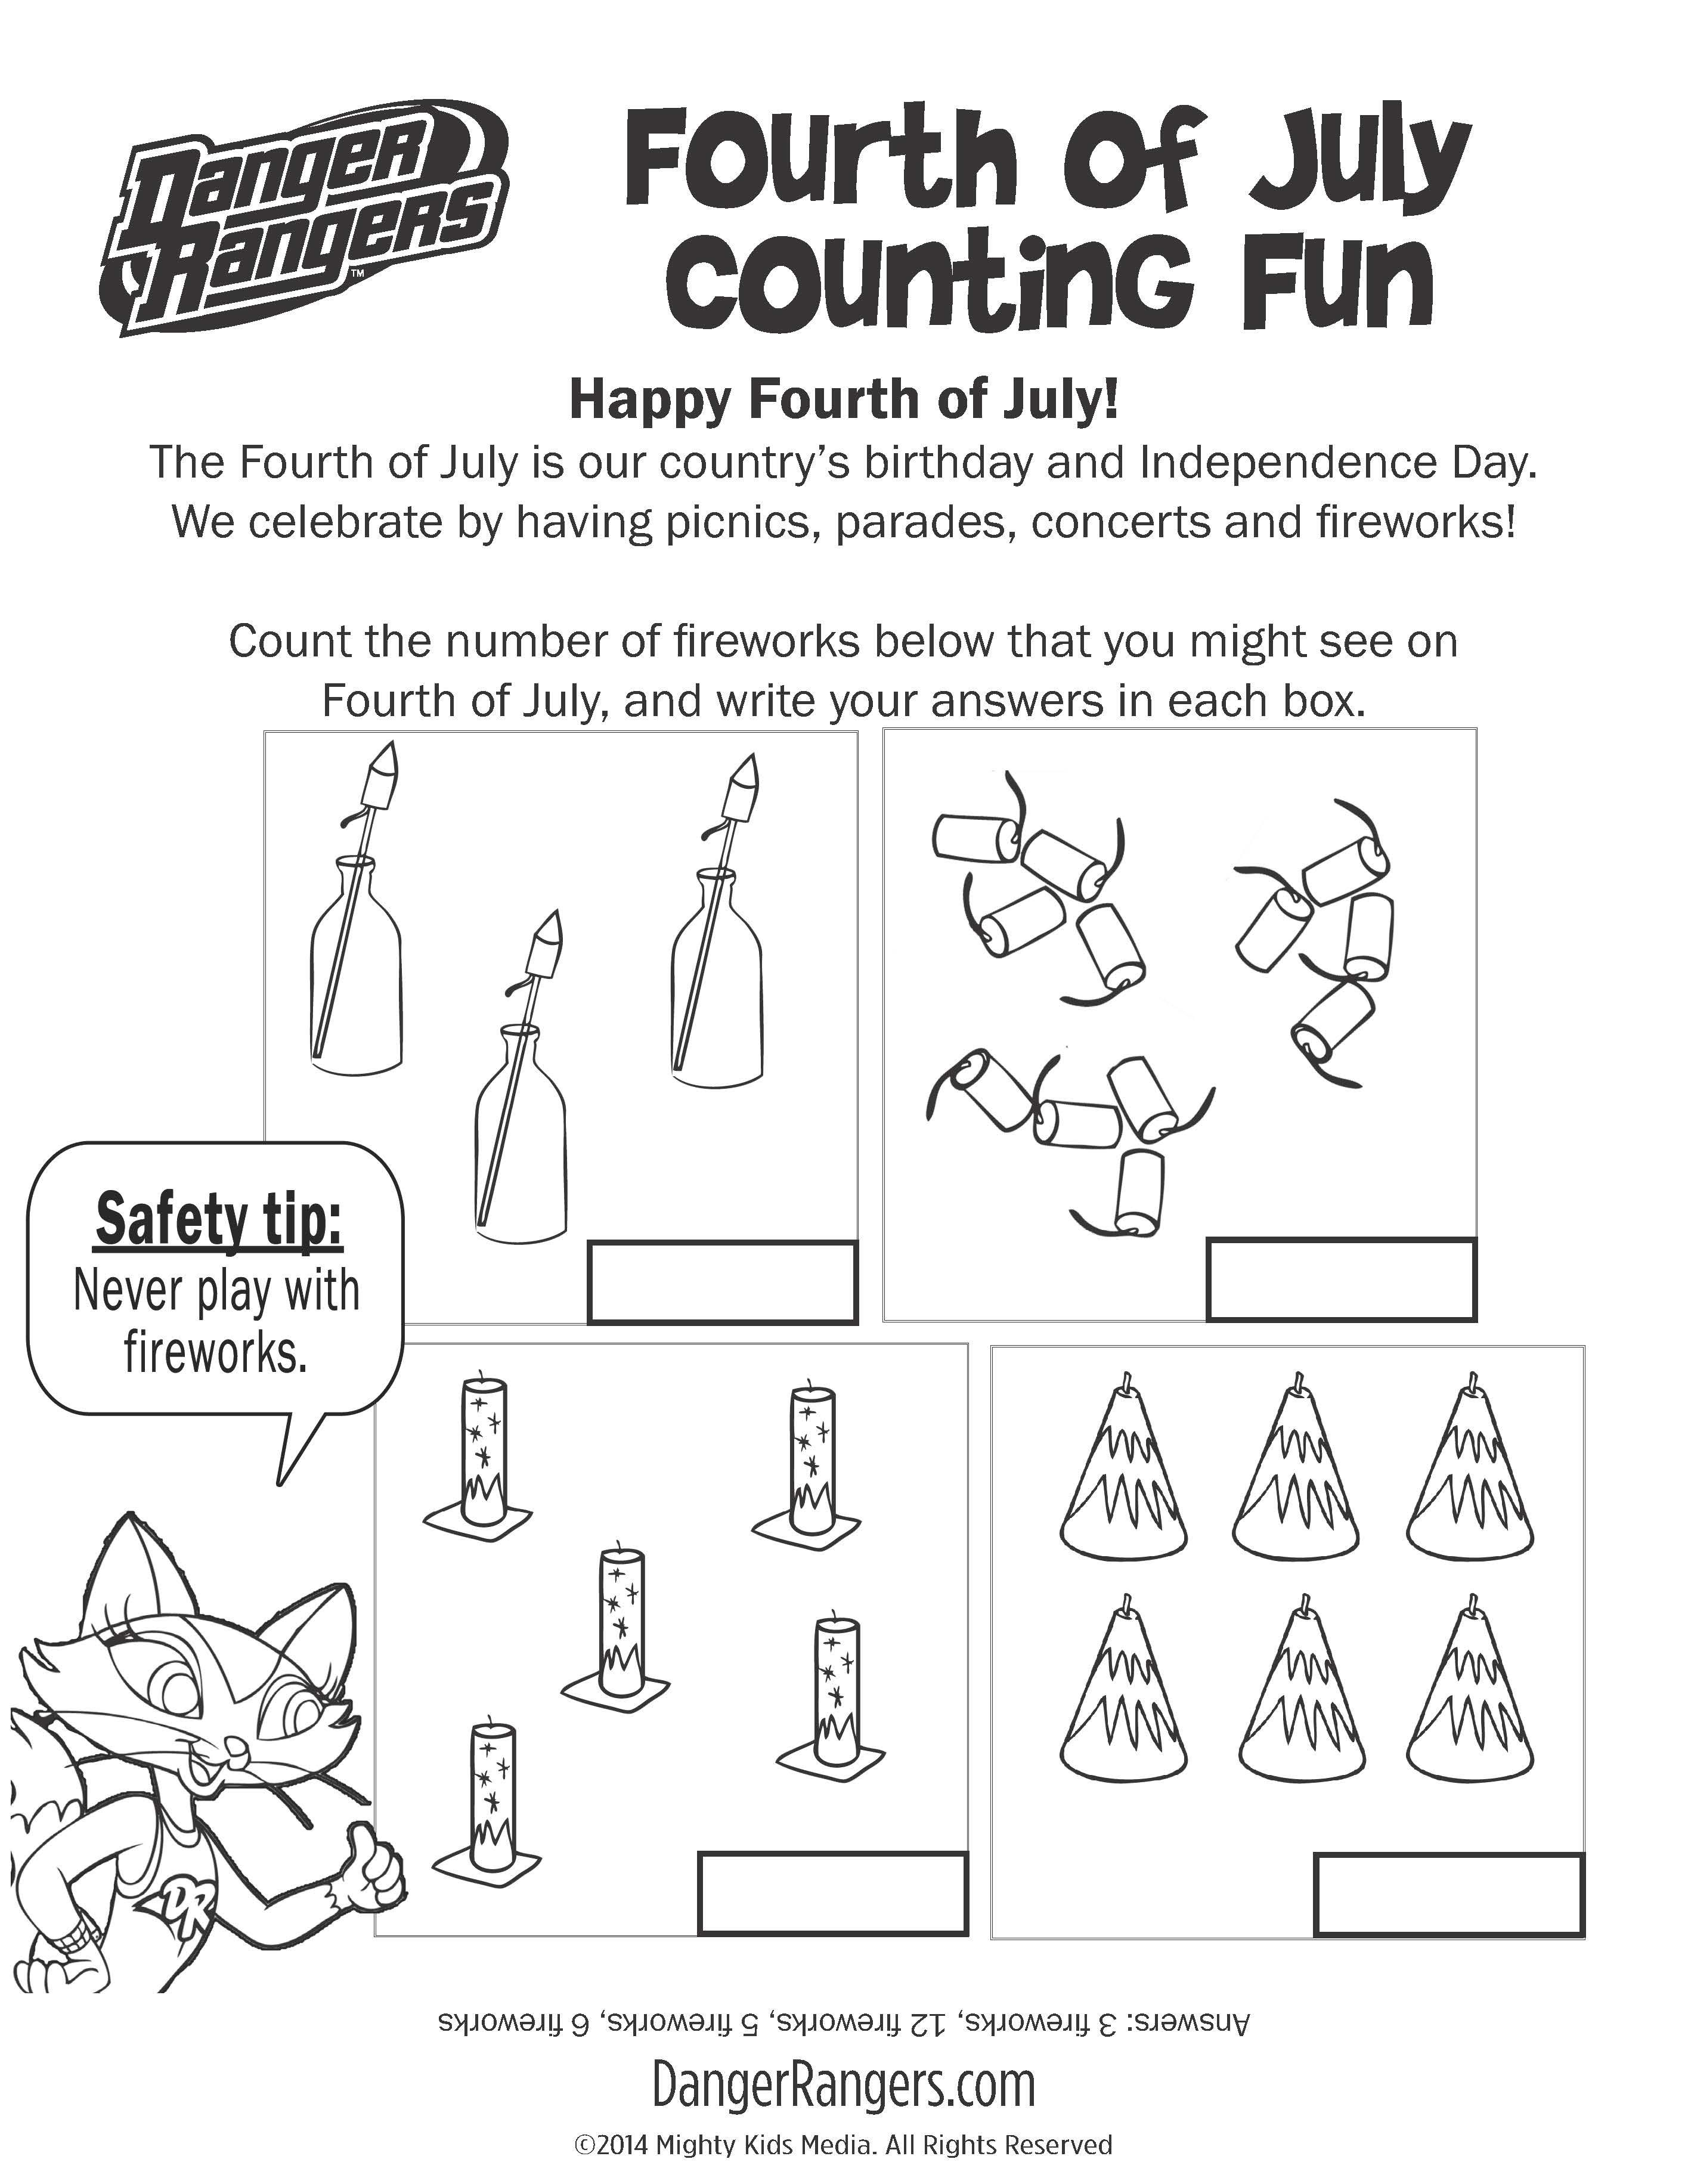 Fourth Of July Counting Worksheet Fireworks Safety